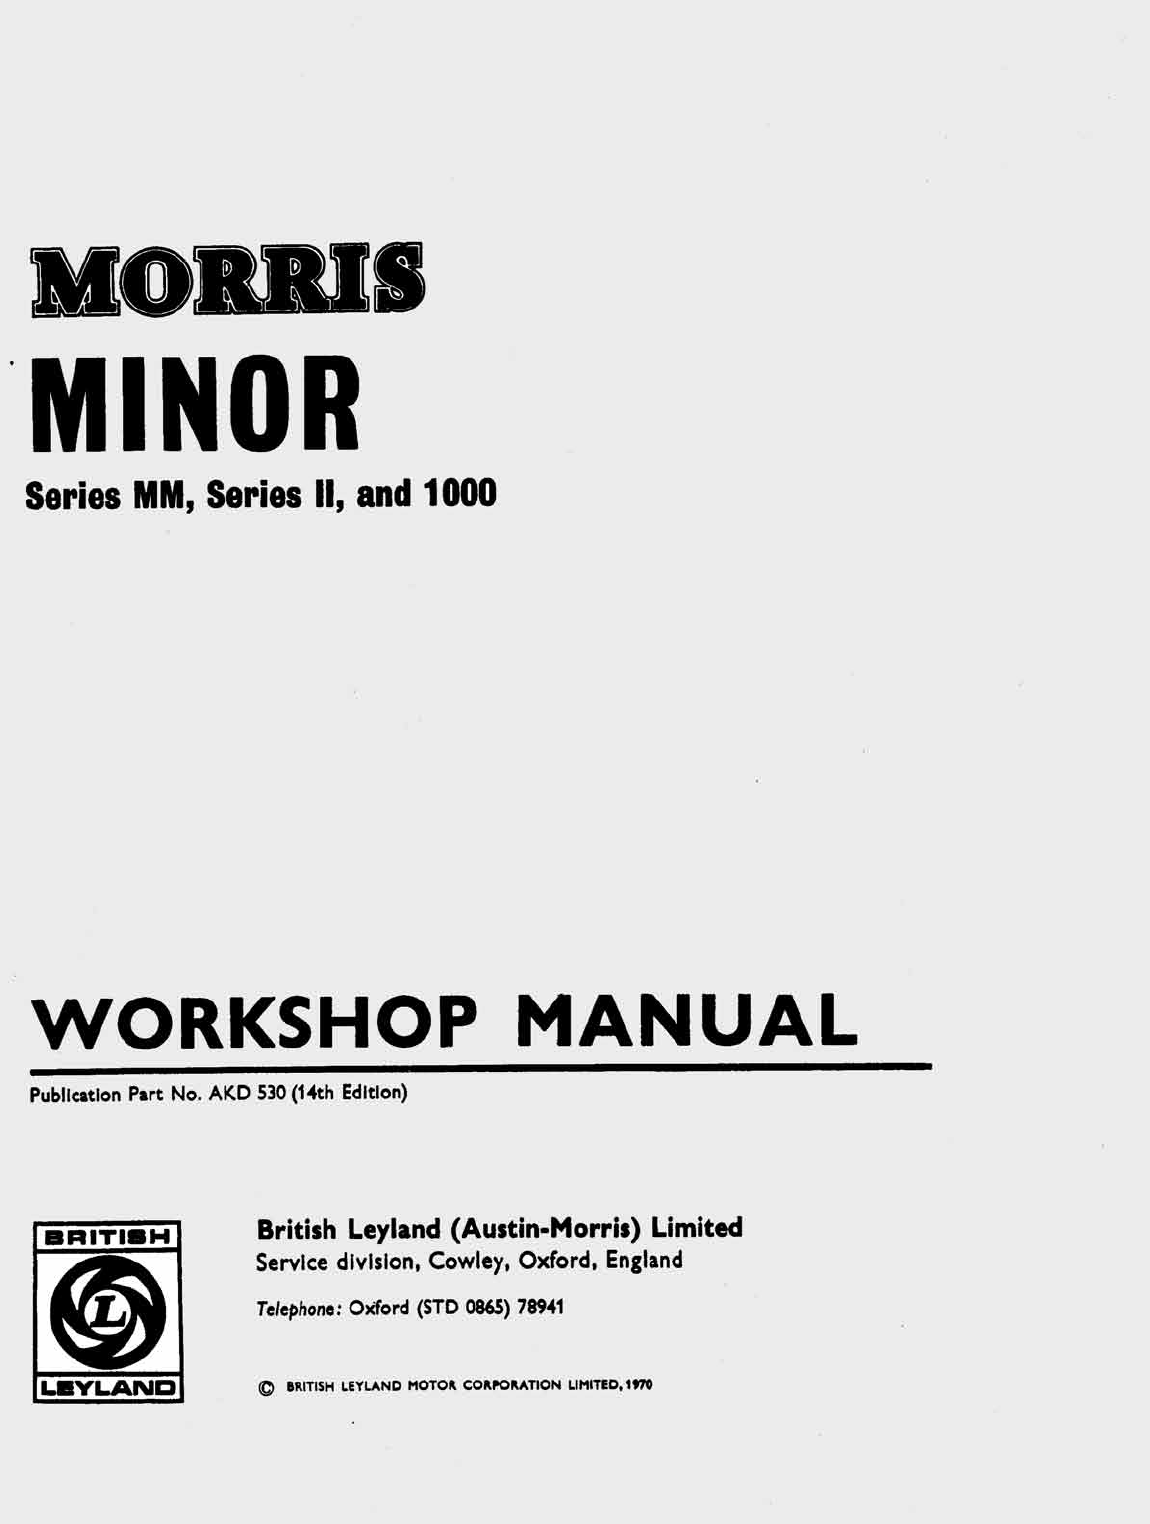 mini 1000 1970 workshop manual pdf rh manuals co 1978 leyland mini workshop manual 1978 leyland mini workshop manual